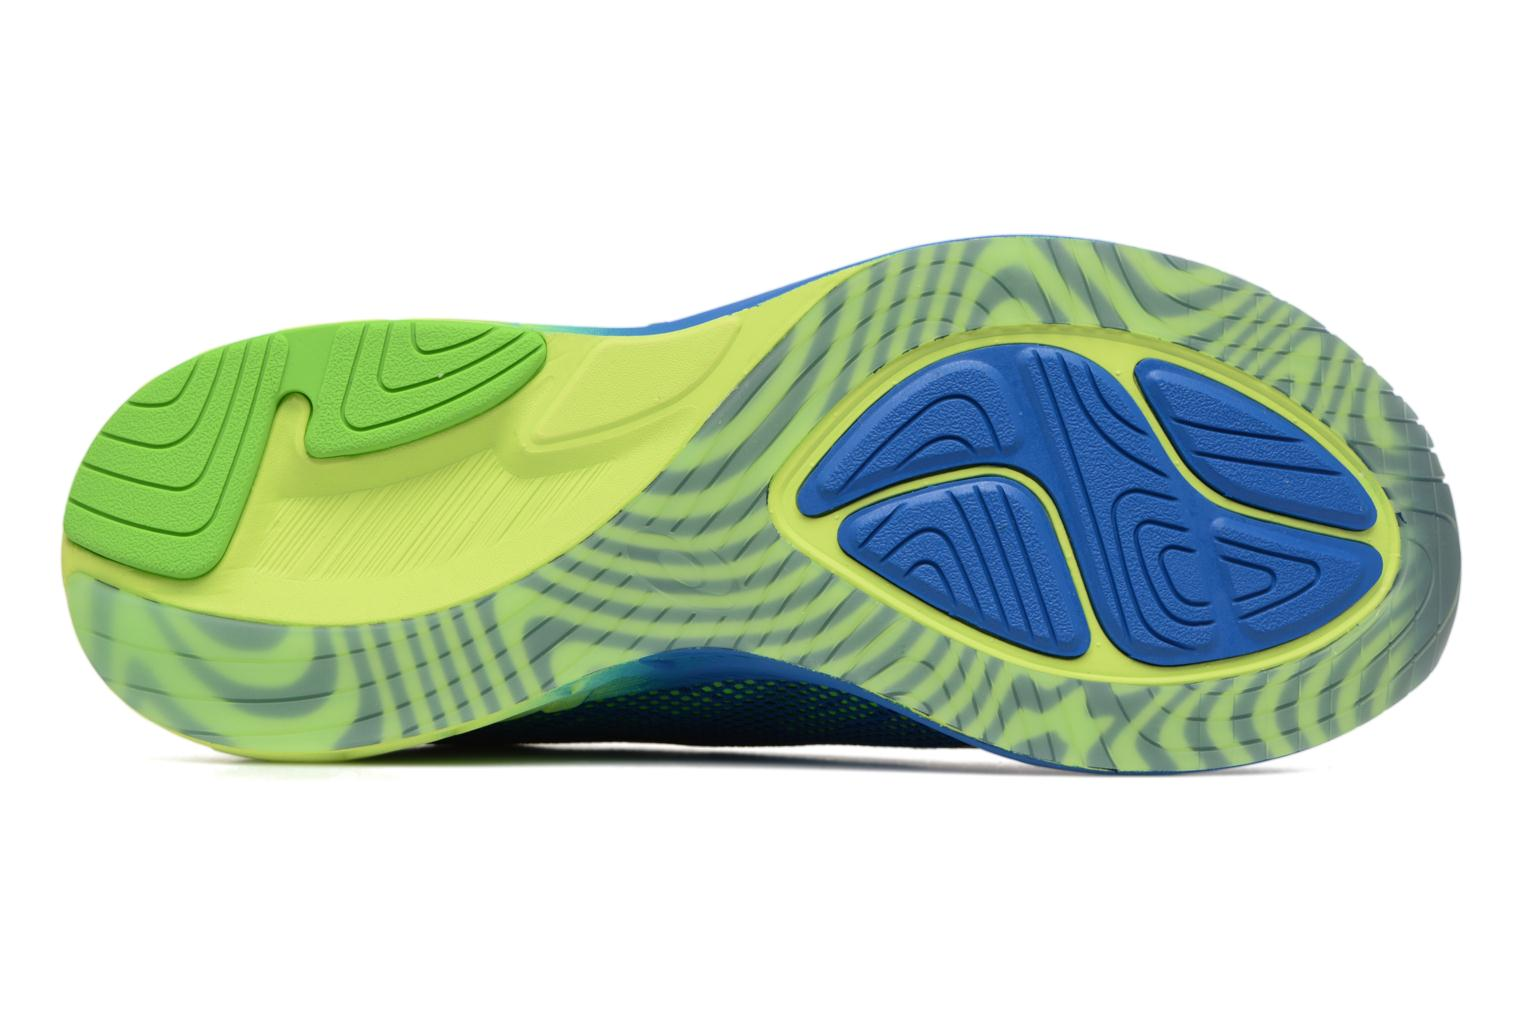 Noosa FF Imperial/Safety Yellow/Green Gecko